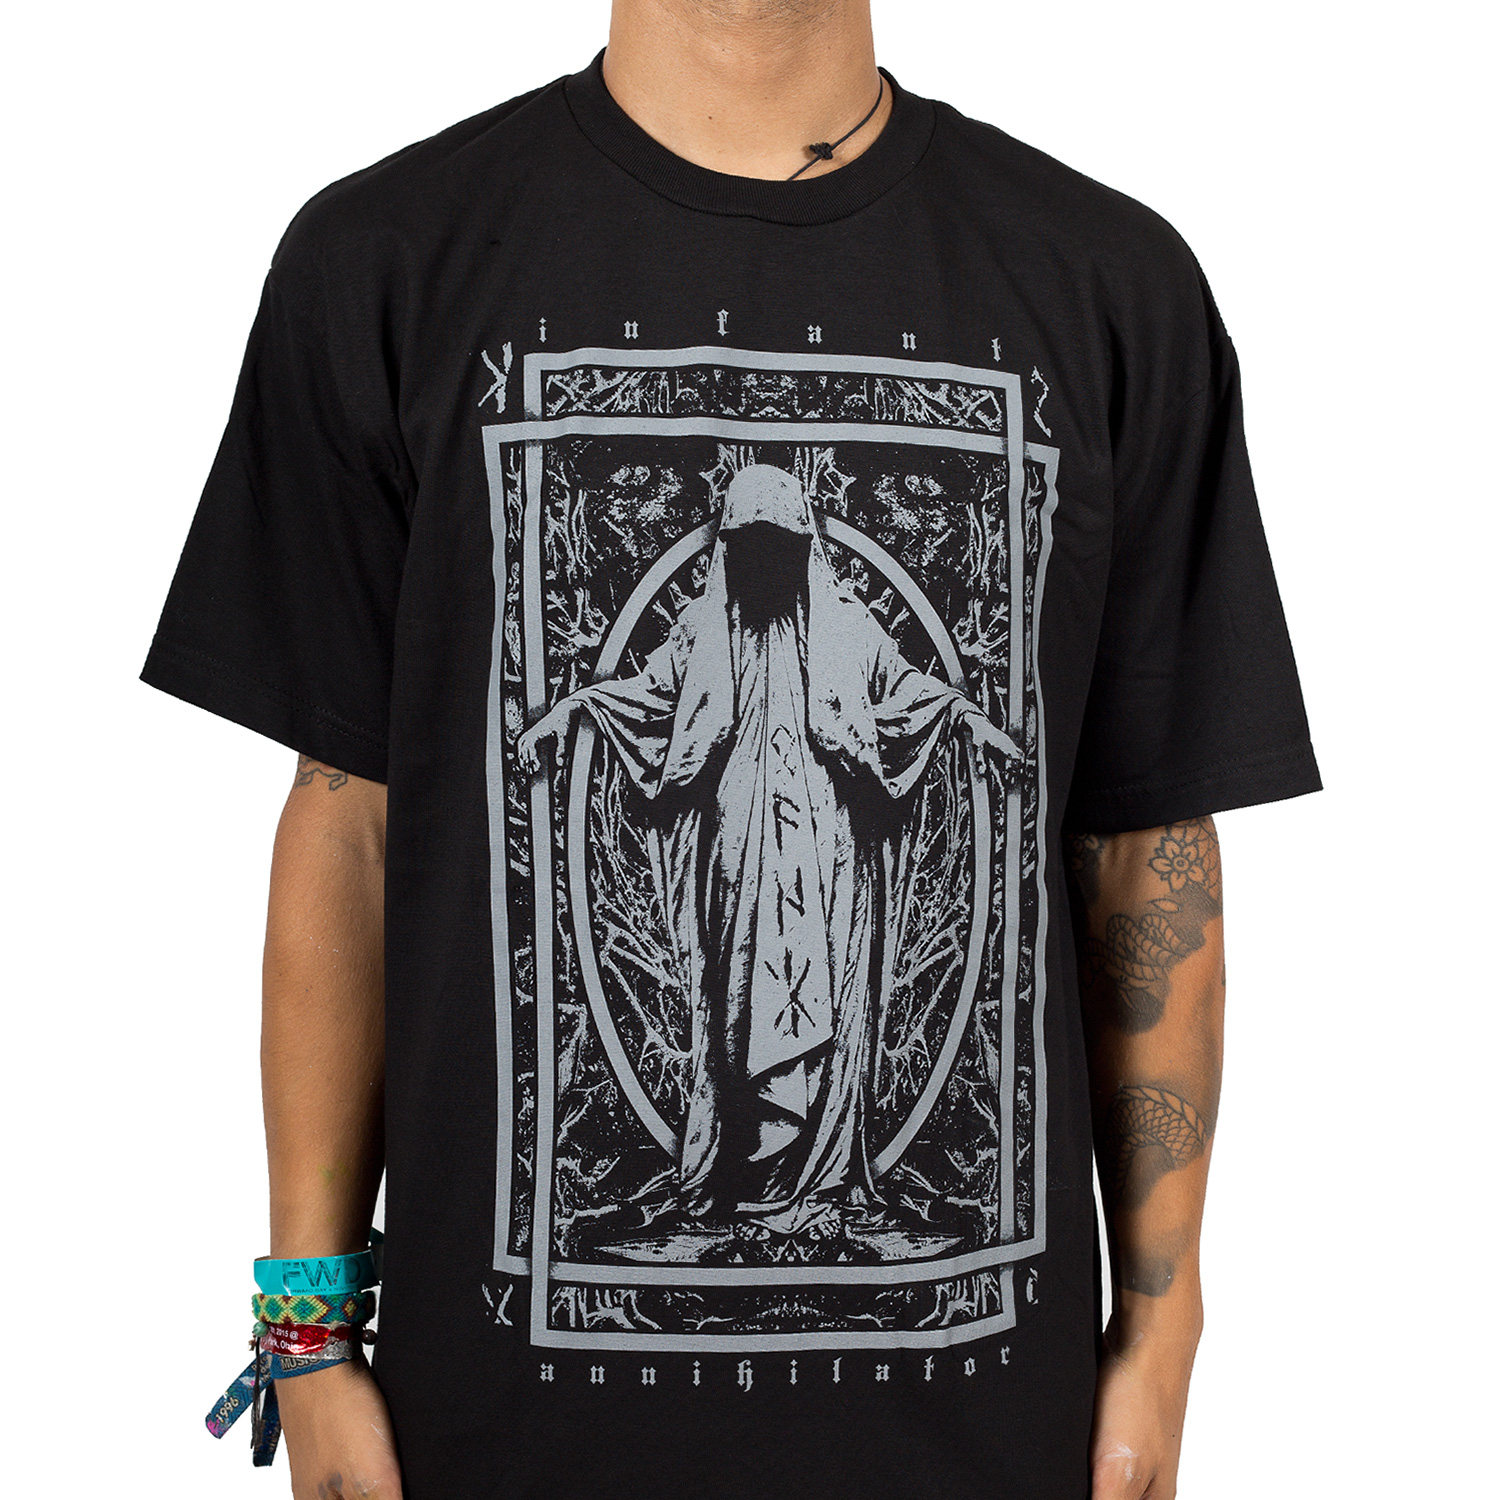 Black t shirt for babies - The Priest